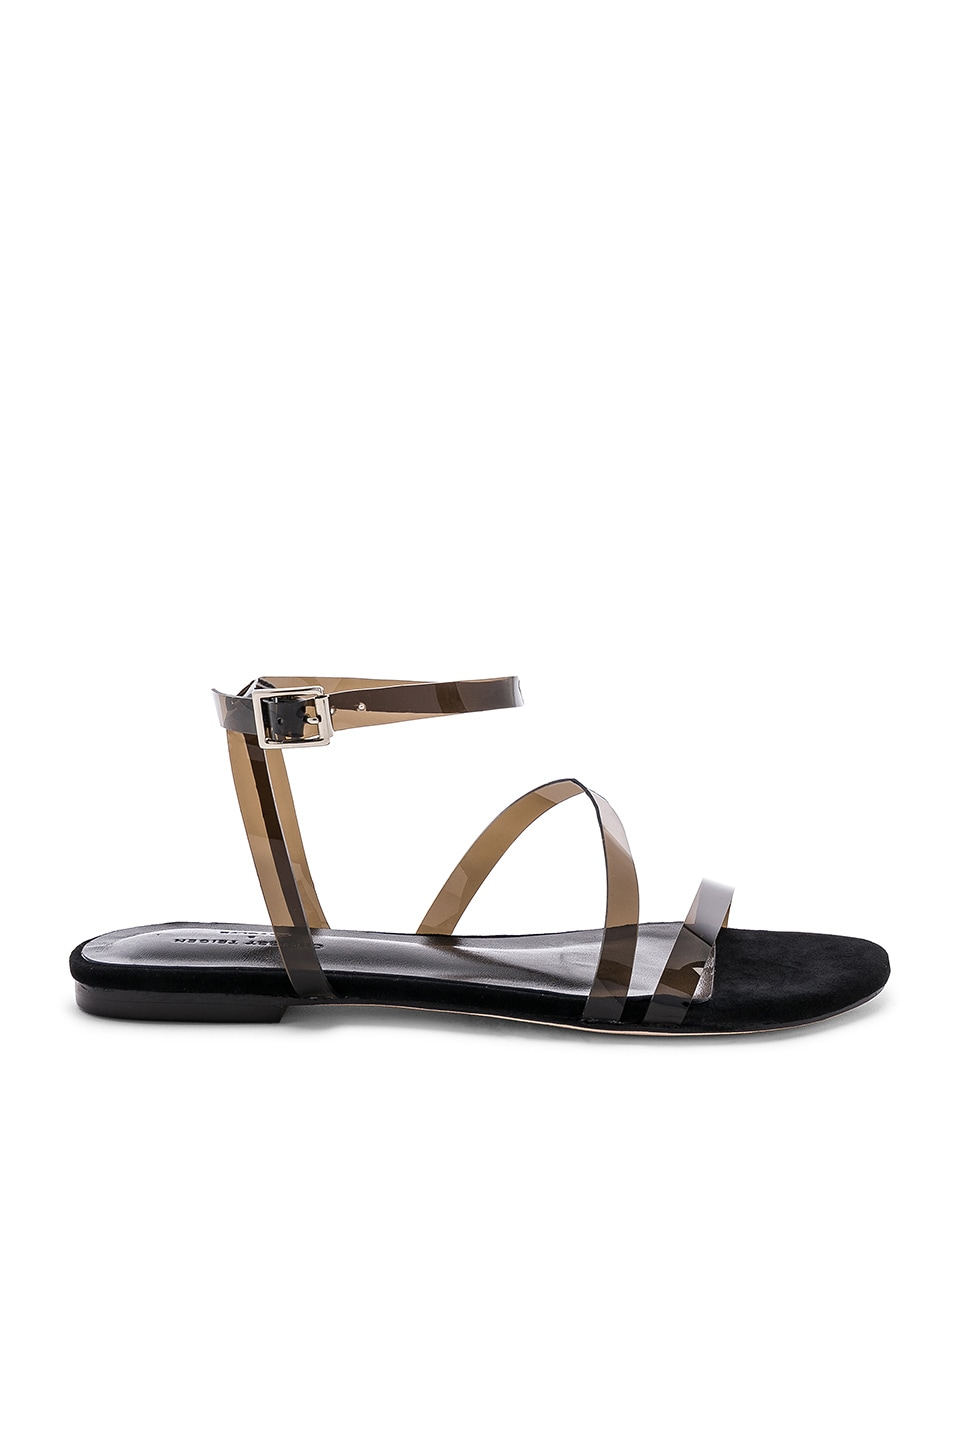 RAYE Mila Sandal in Black